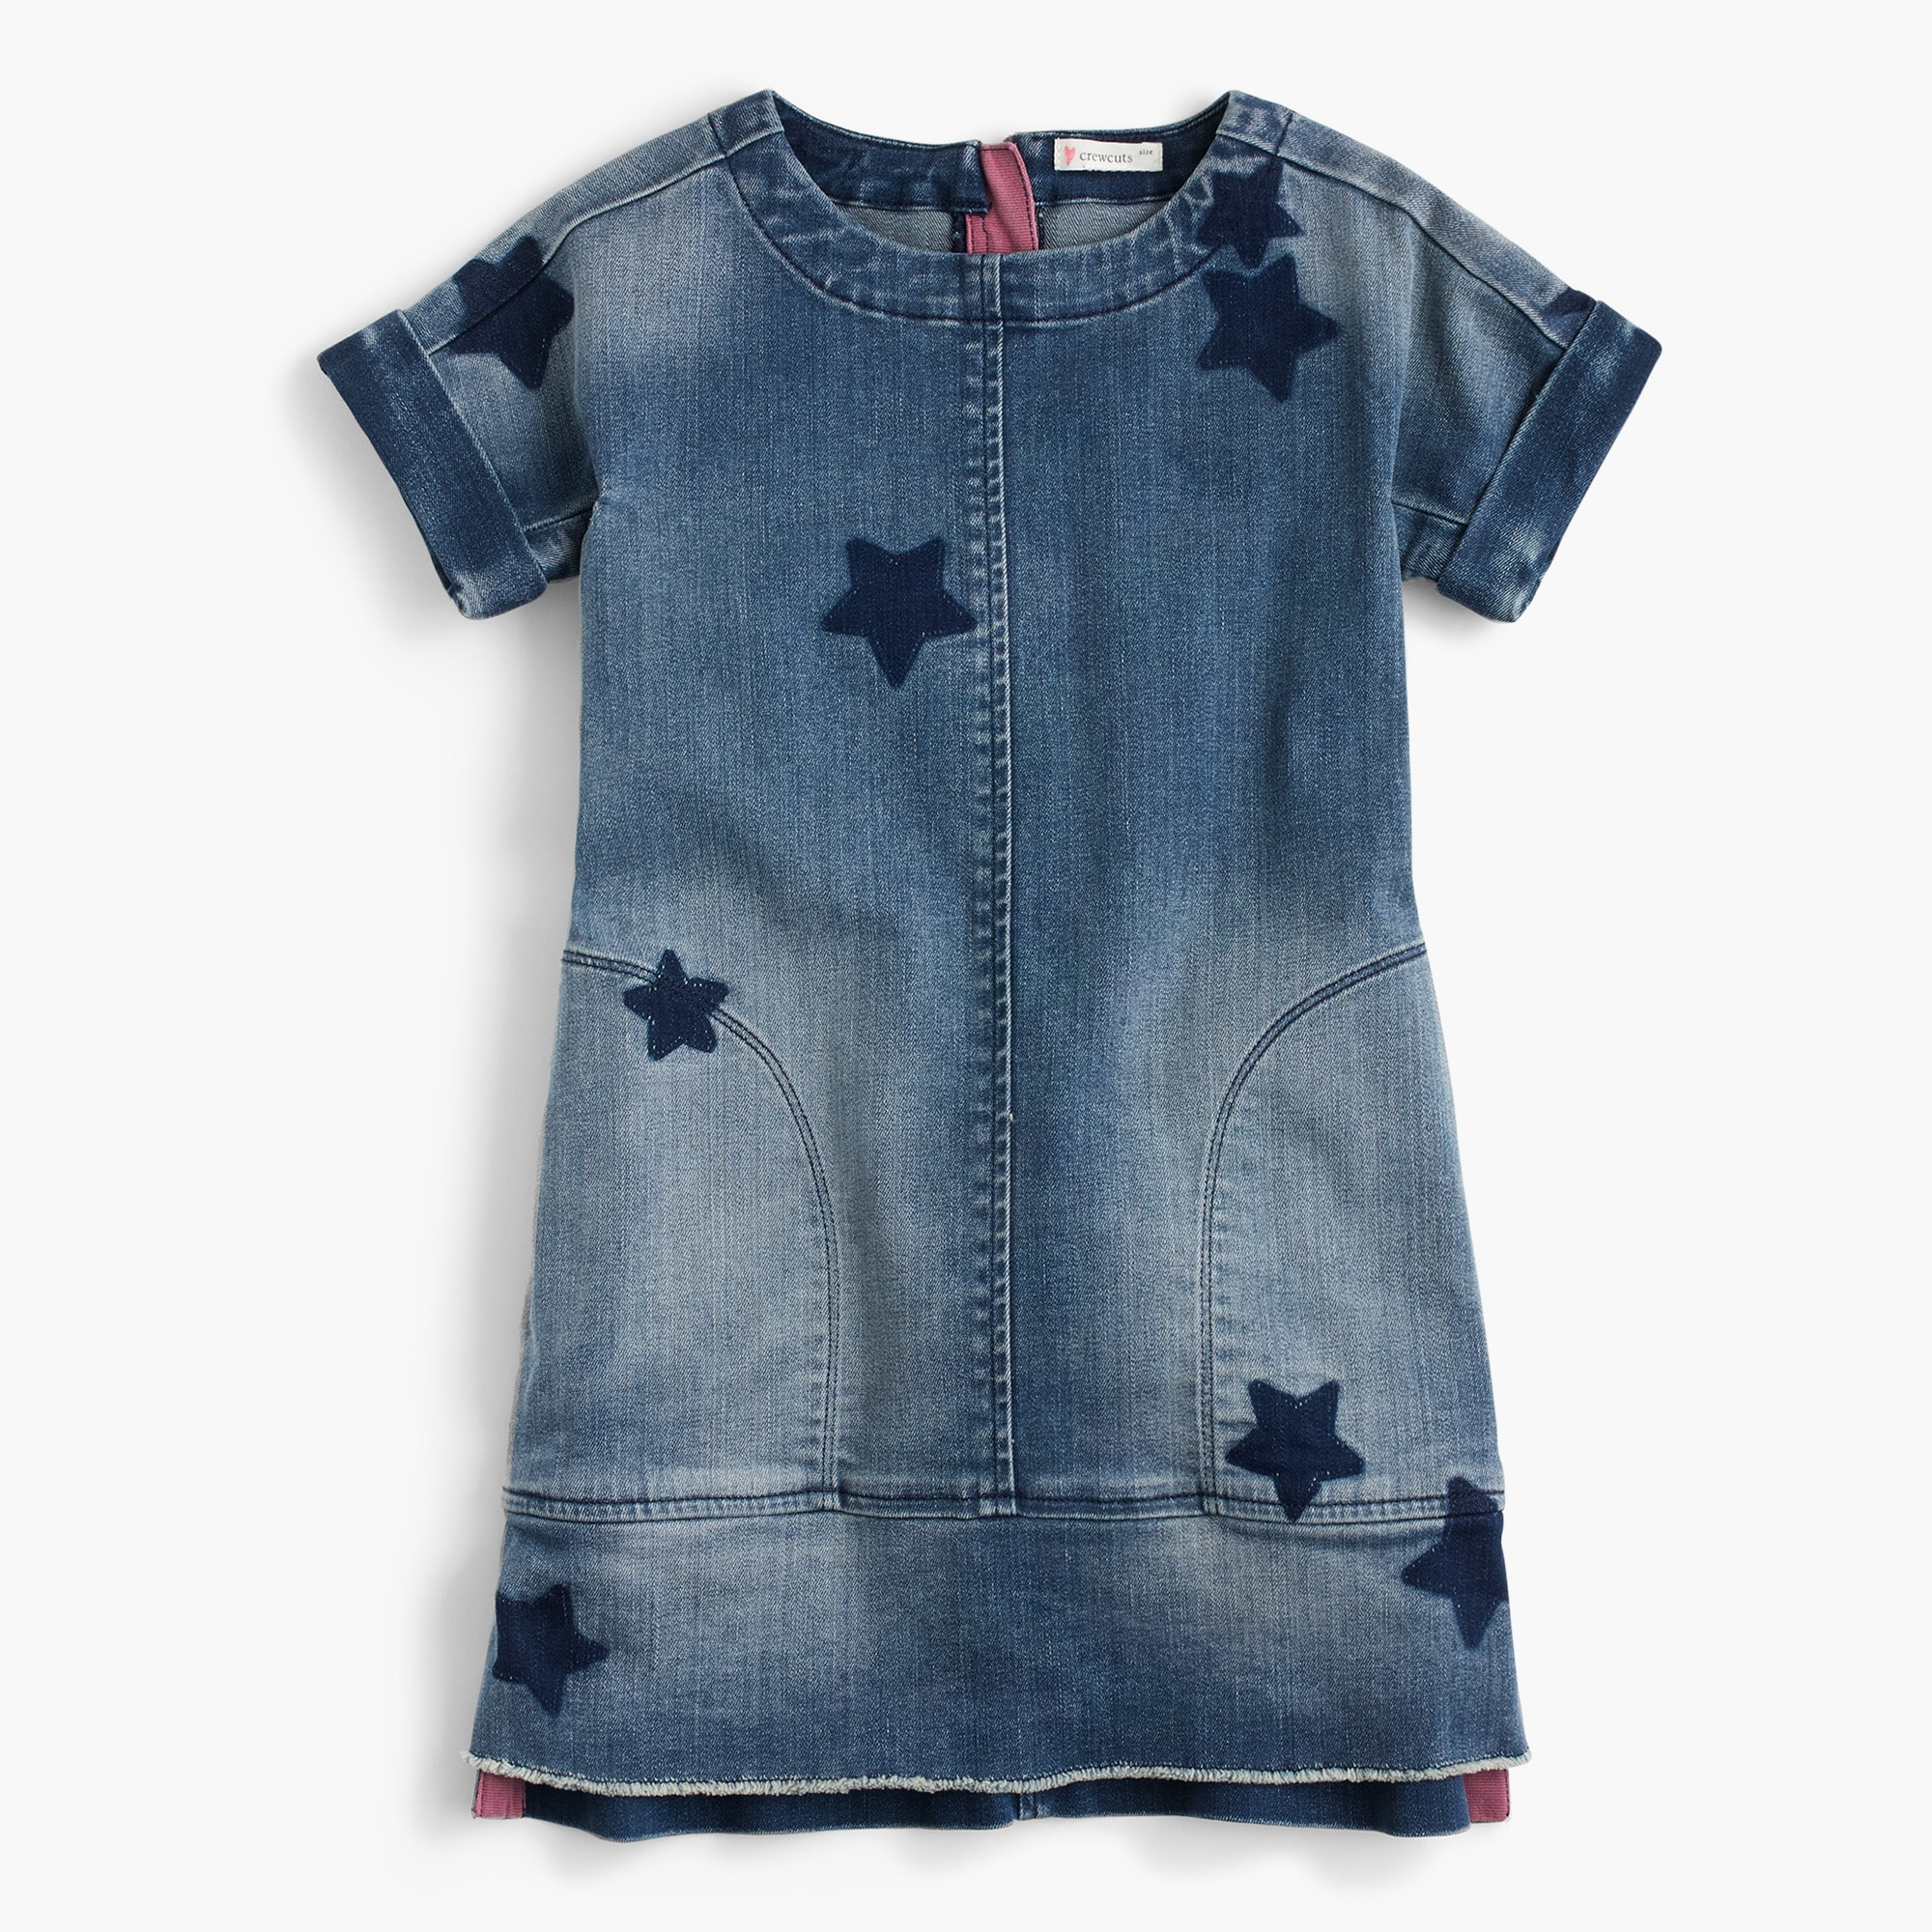 Girls' denim dress in star print girl dresses & jumpsuits c